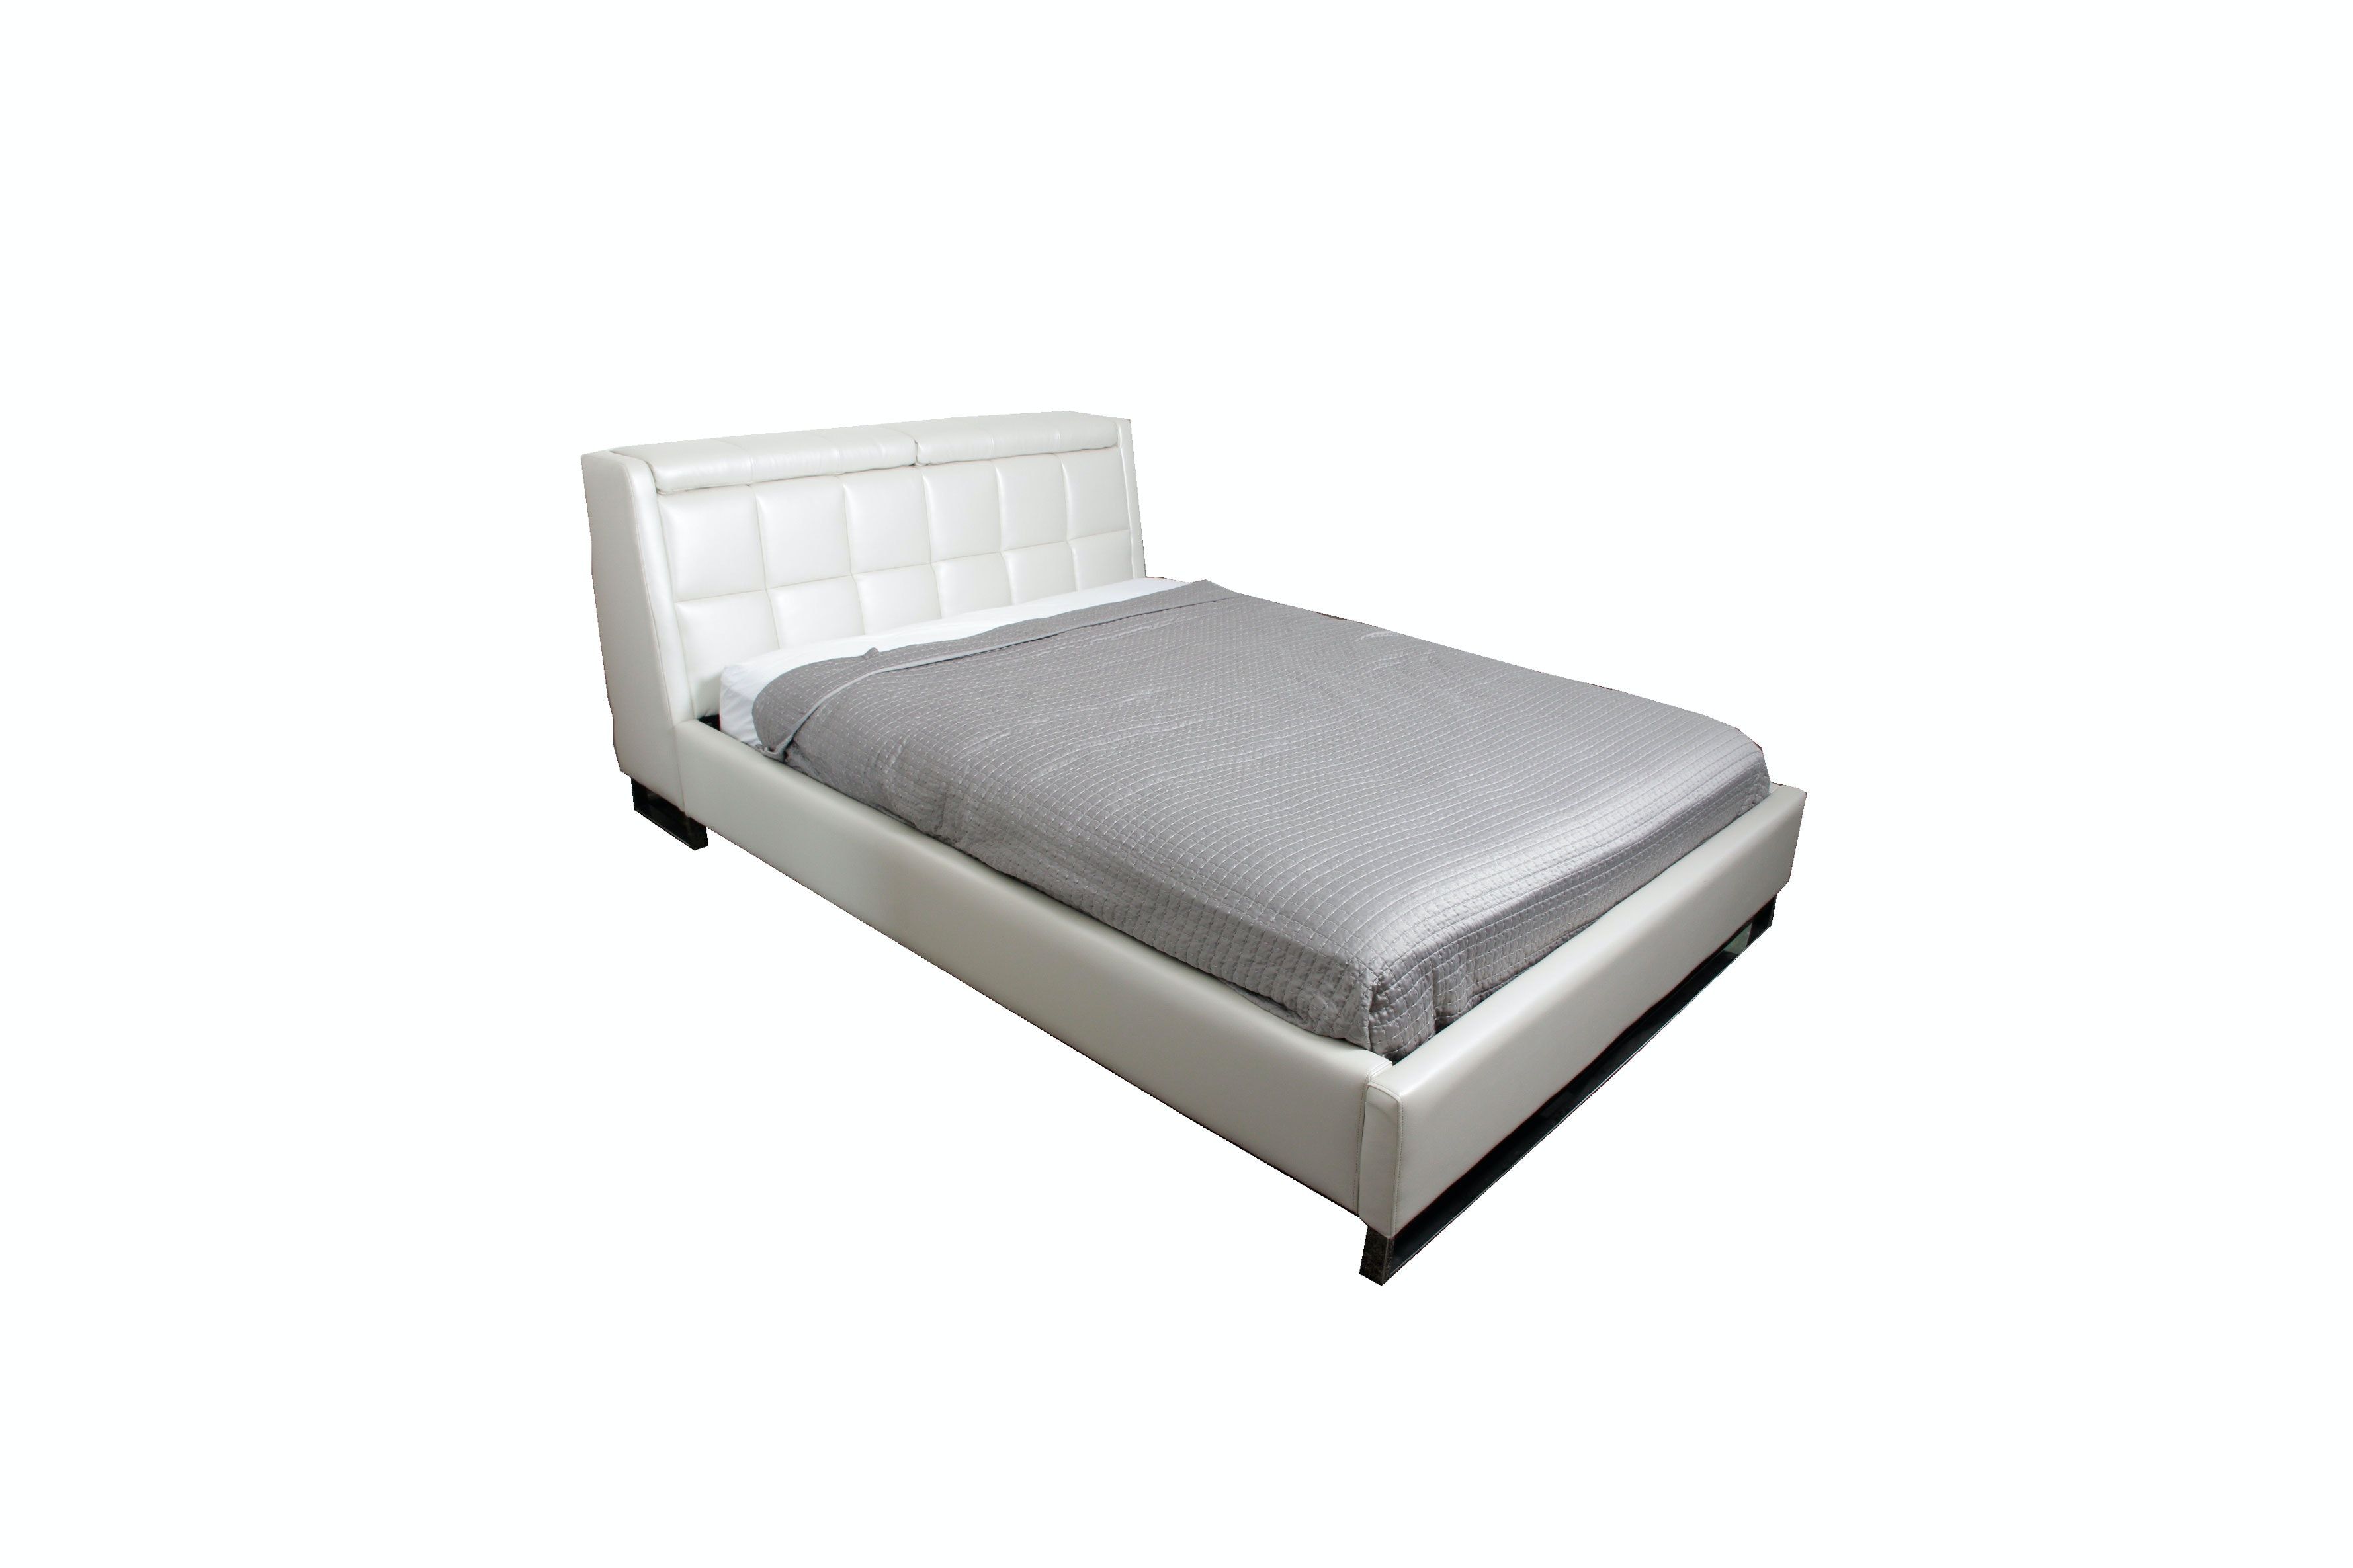 Metallic Off White Leather Full Size Bed Frame